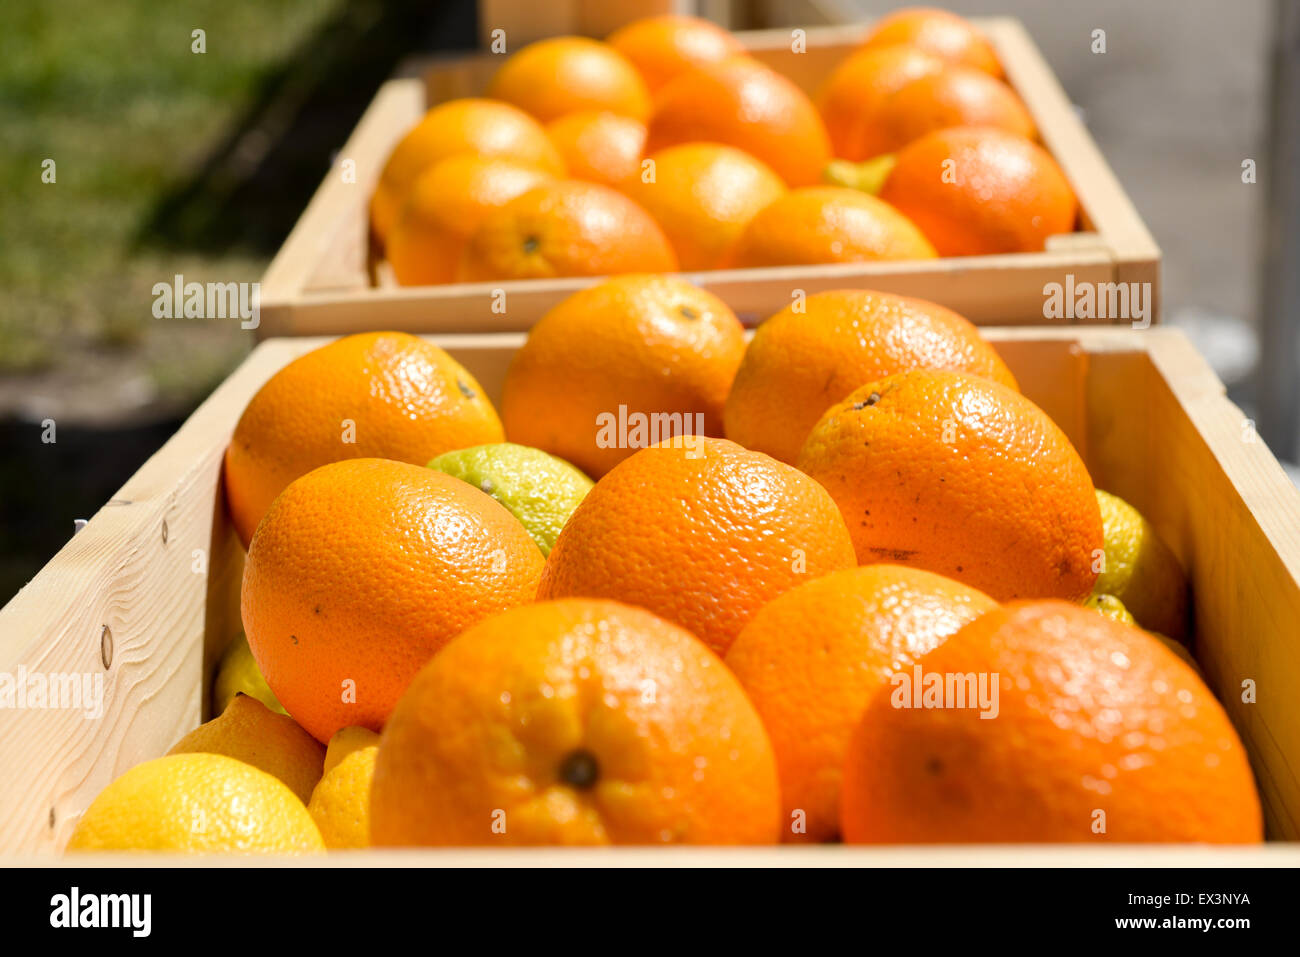 Lot Of Ripe Oranges In Wooden Crates